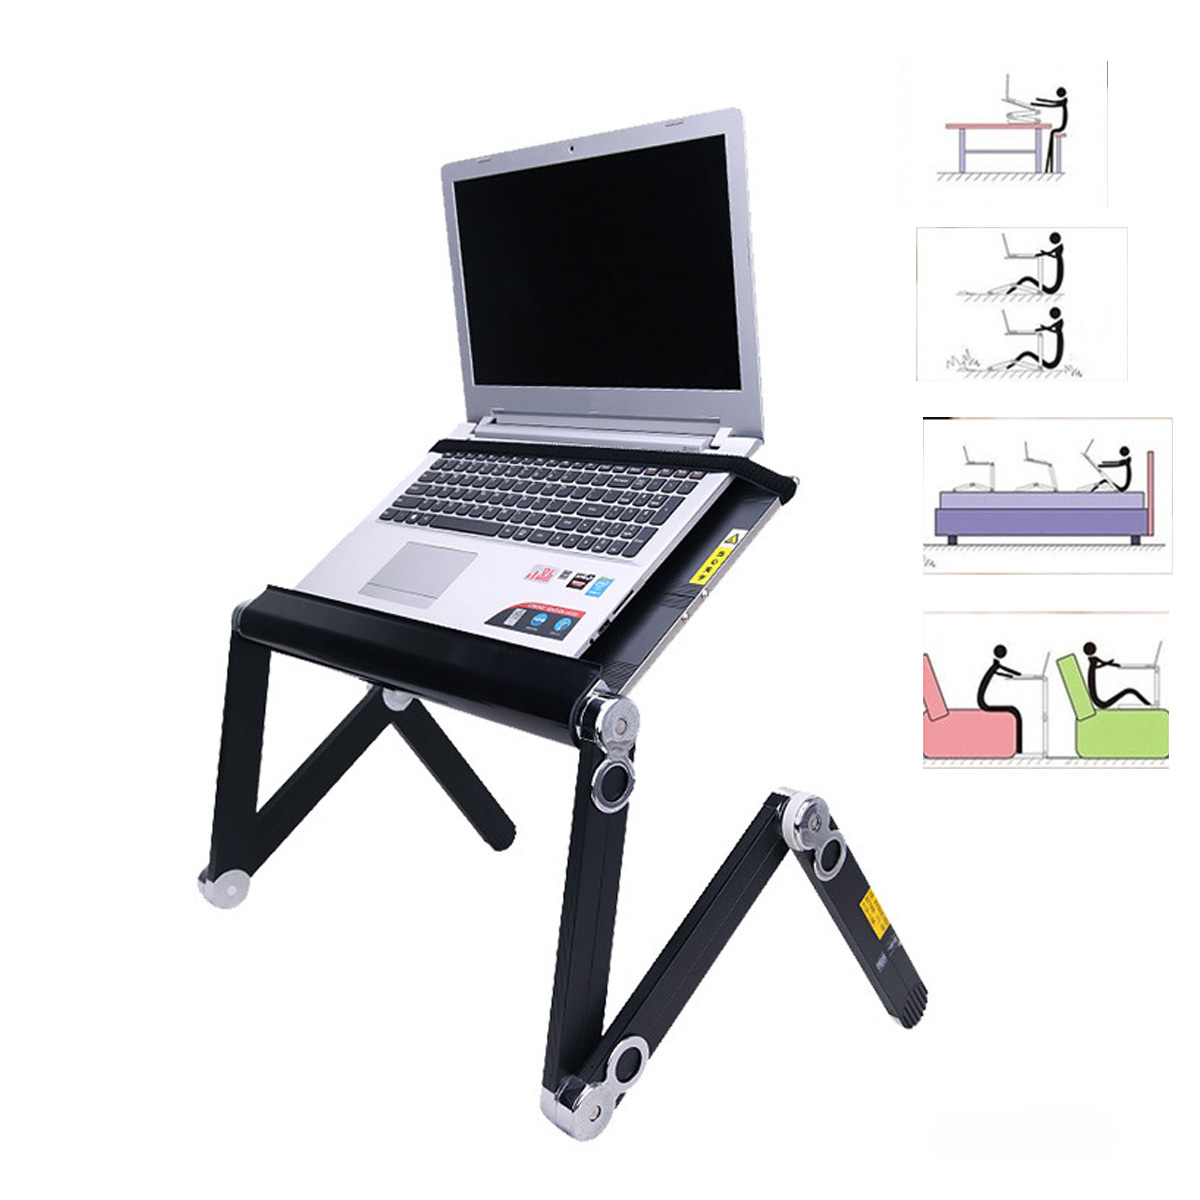 YUNAI 360 Degree Adjustable Notebook Suitable With Cooling Fan Folding Portable Laptop Desk Table Stand Tray For Bed And Sofa